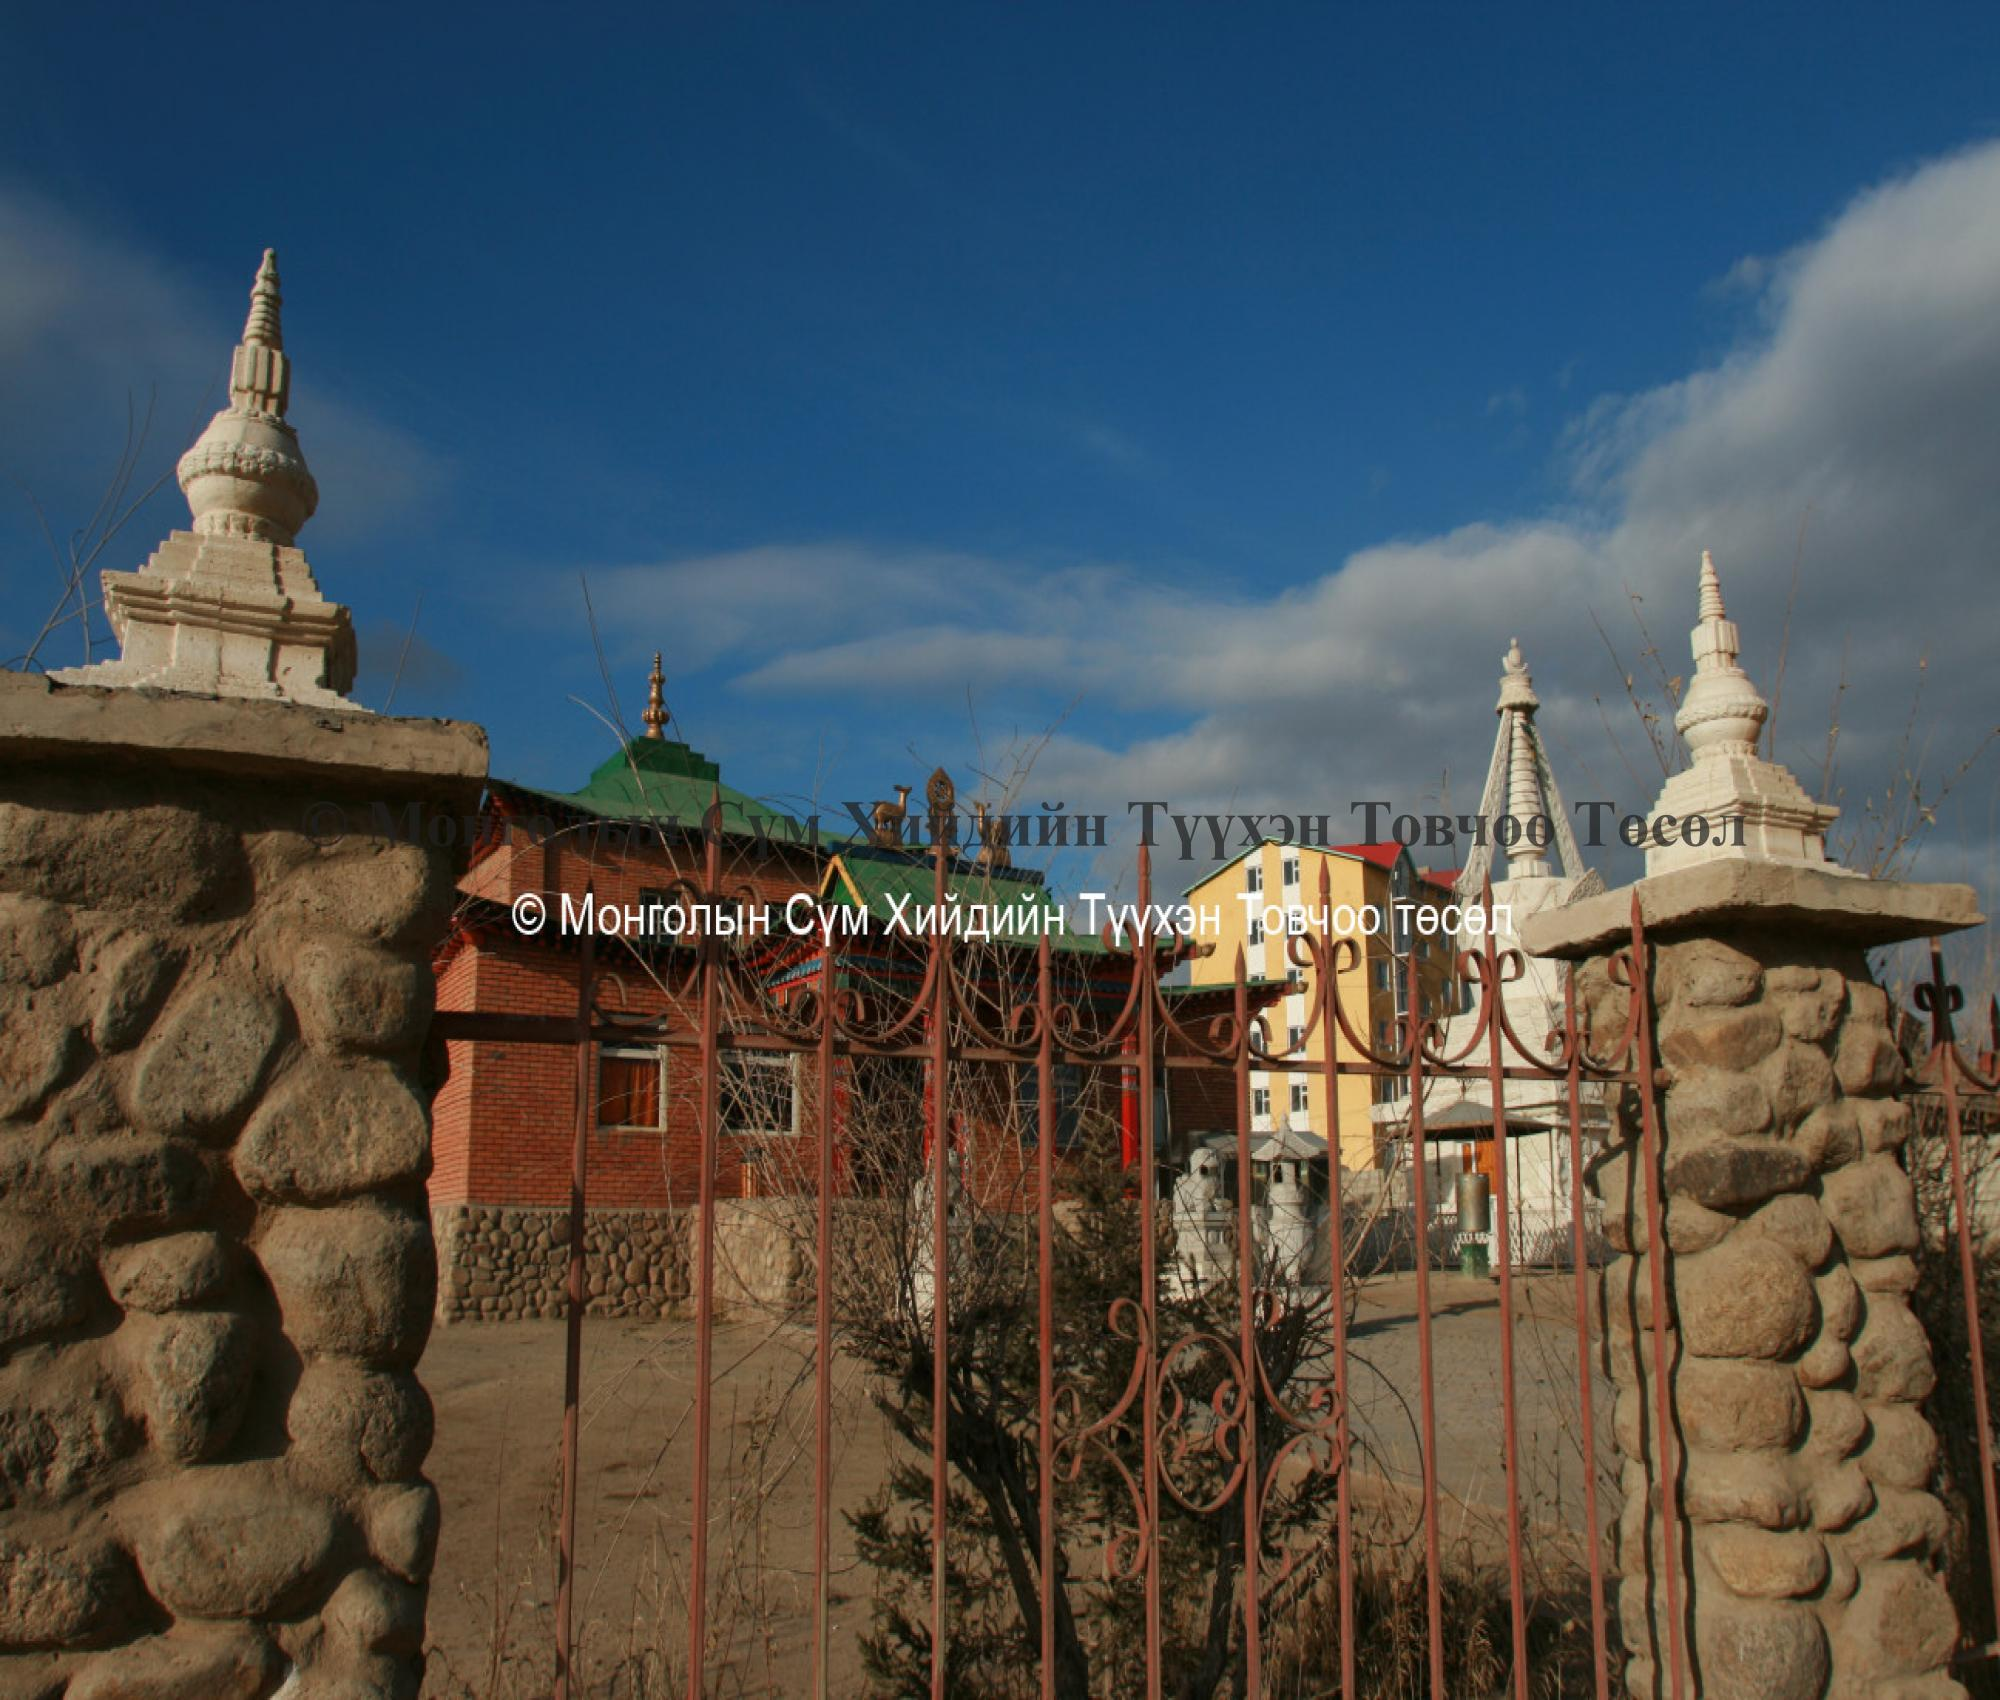 Fence of the monastery